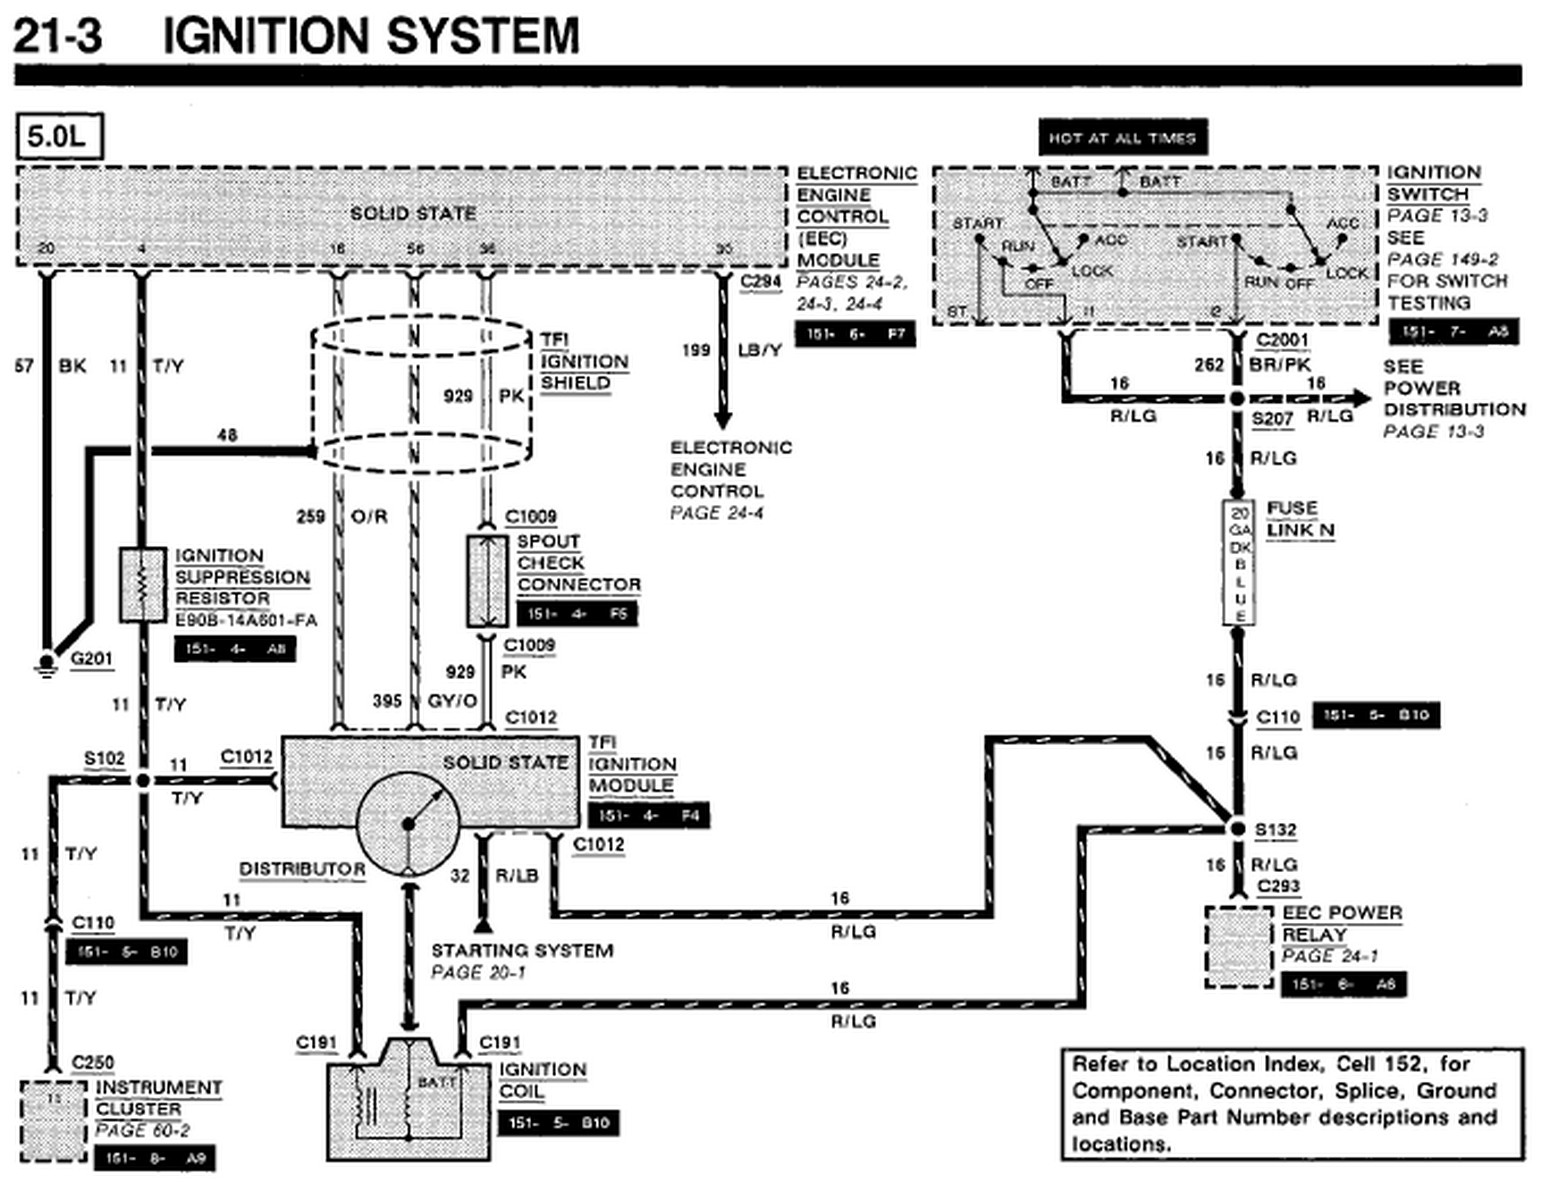 93 ignition switch wiring diagram 93 get free image about wiring diagram